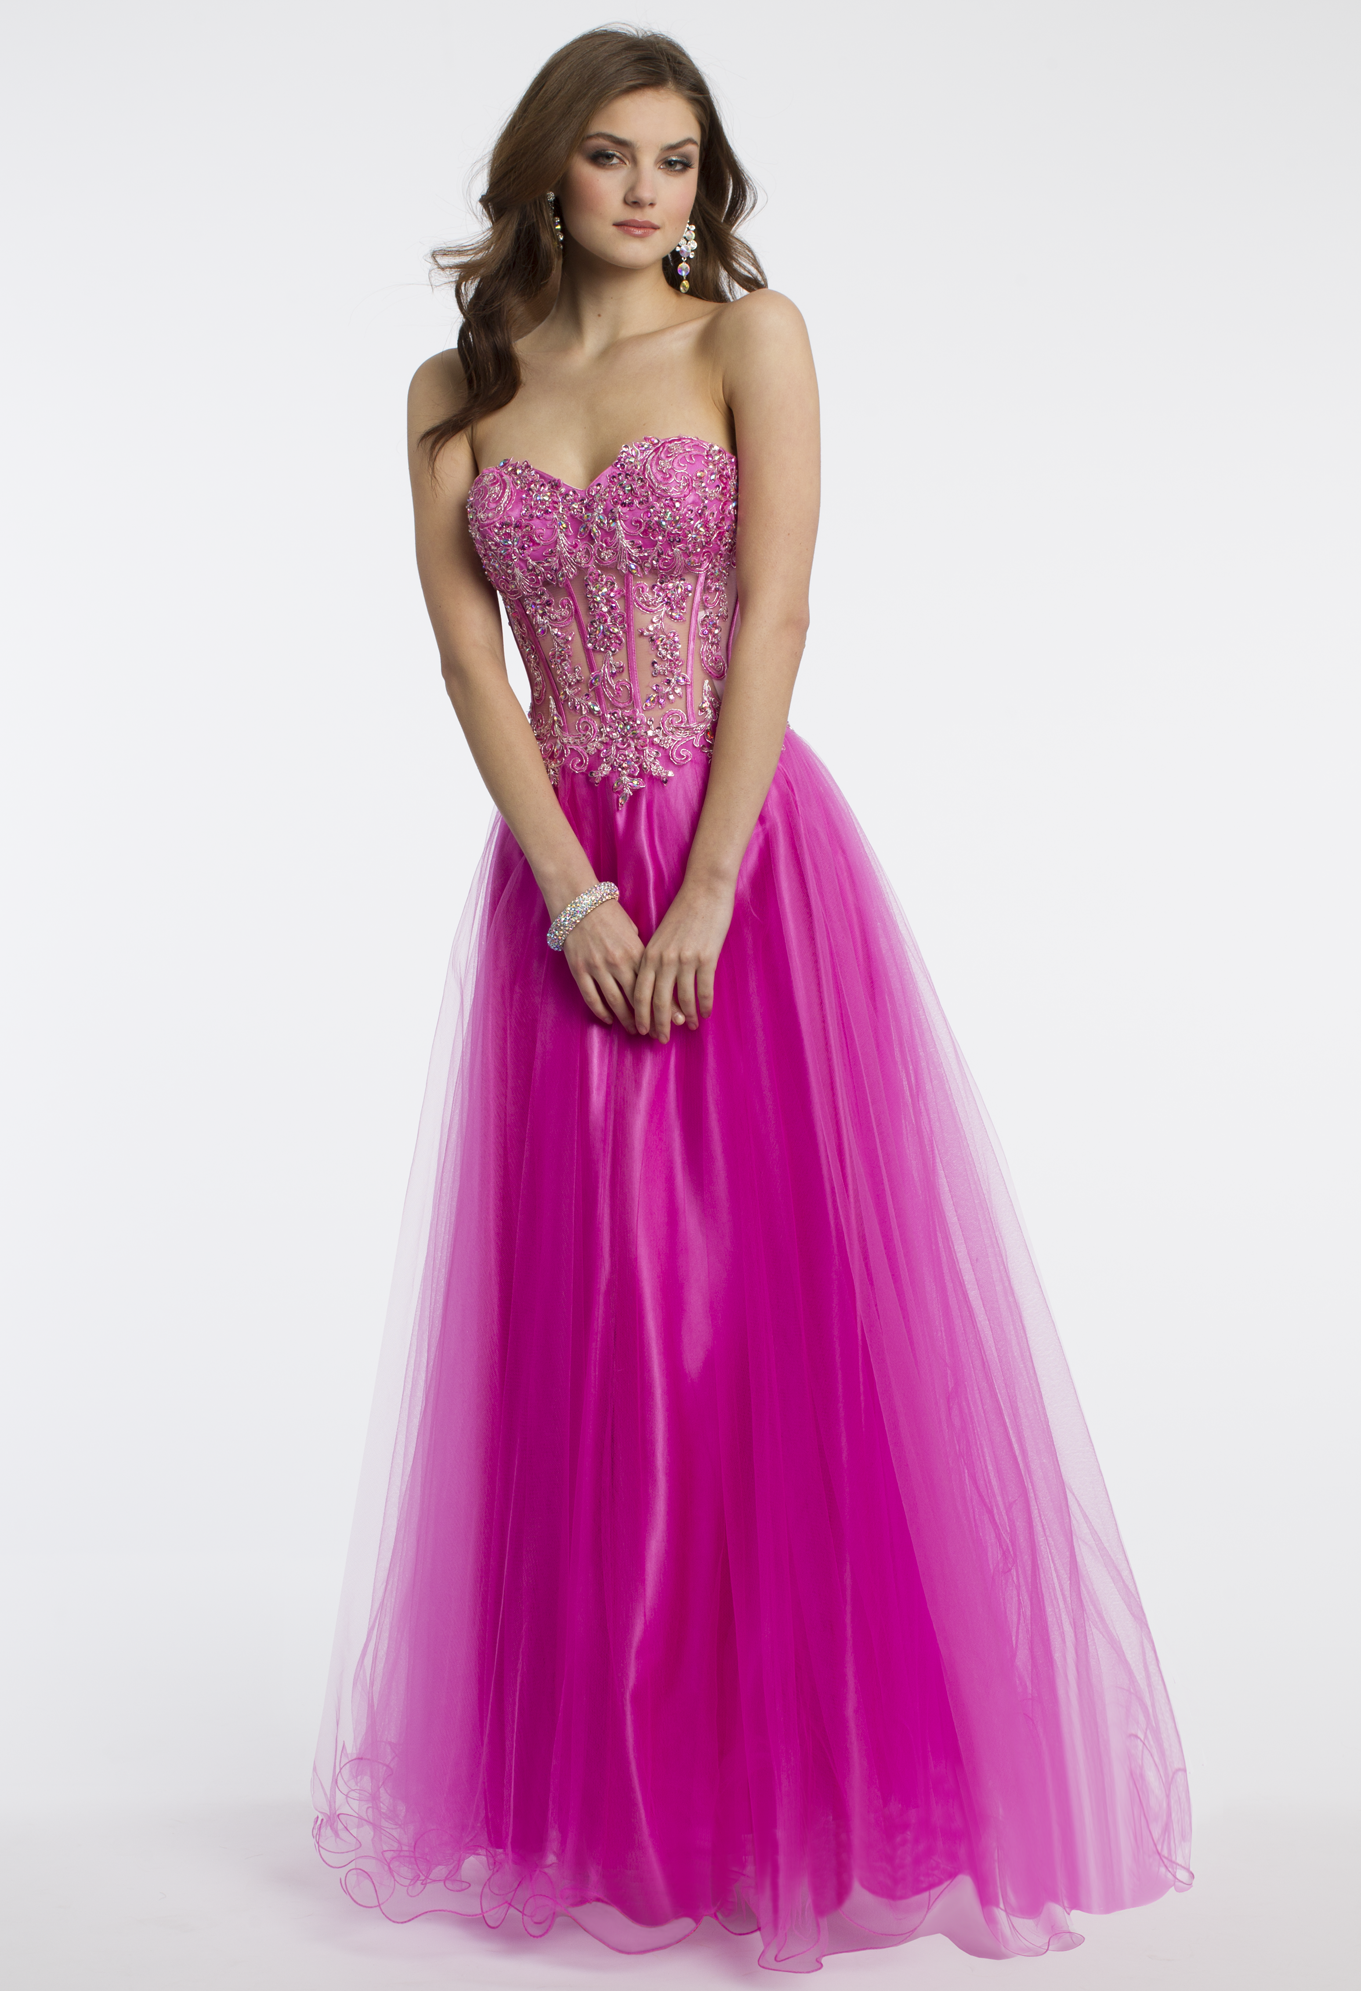 Camille La Vie Illusion Prom Dress with Tulle Skirt | PROM DRESSES ...